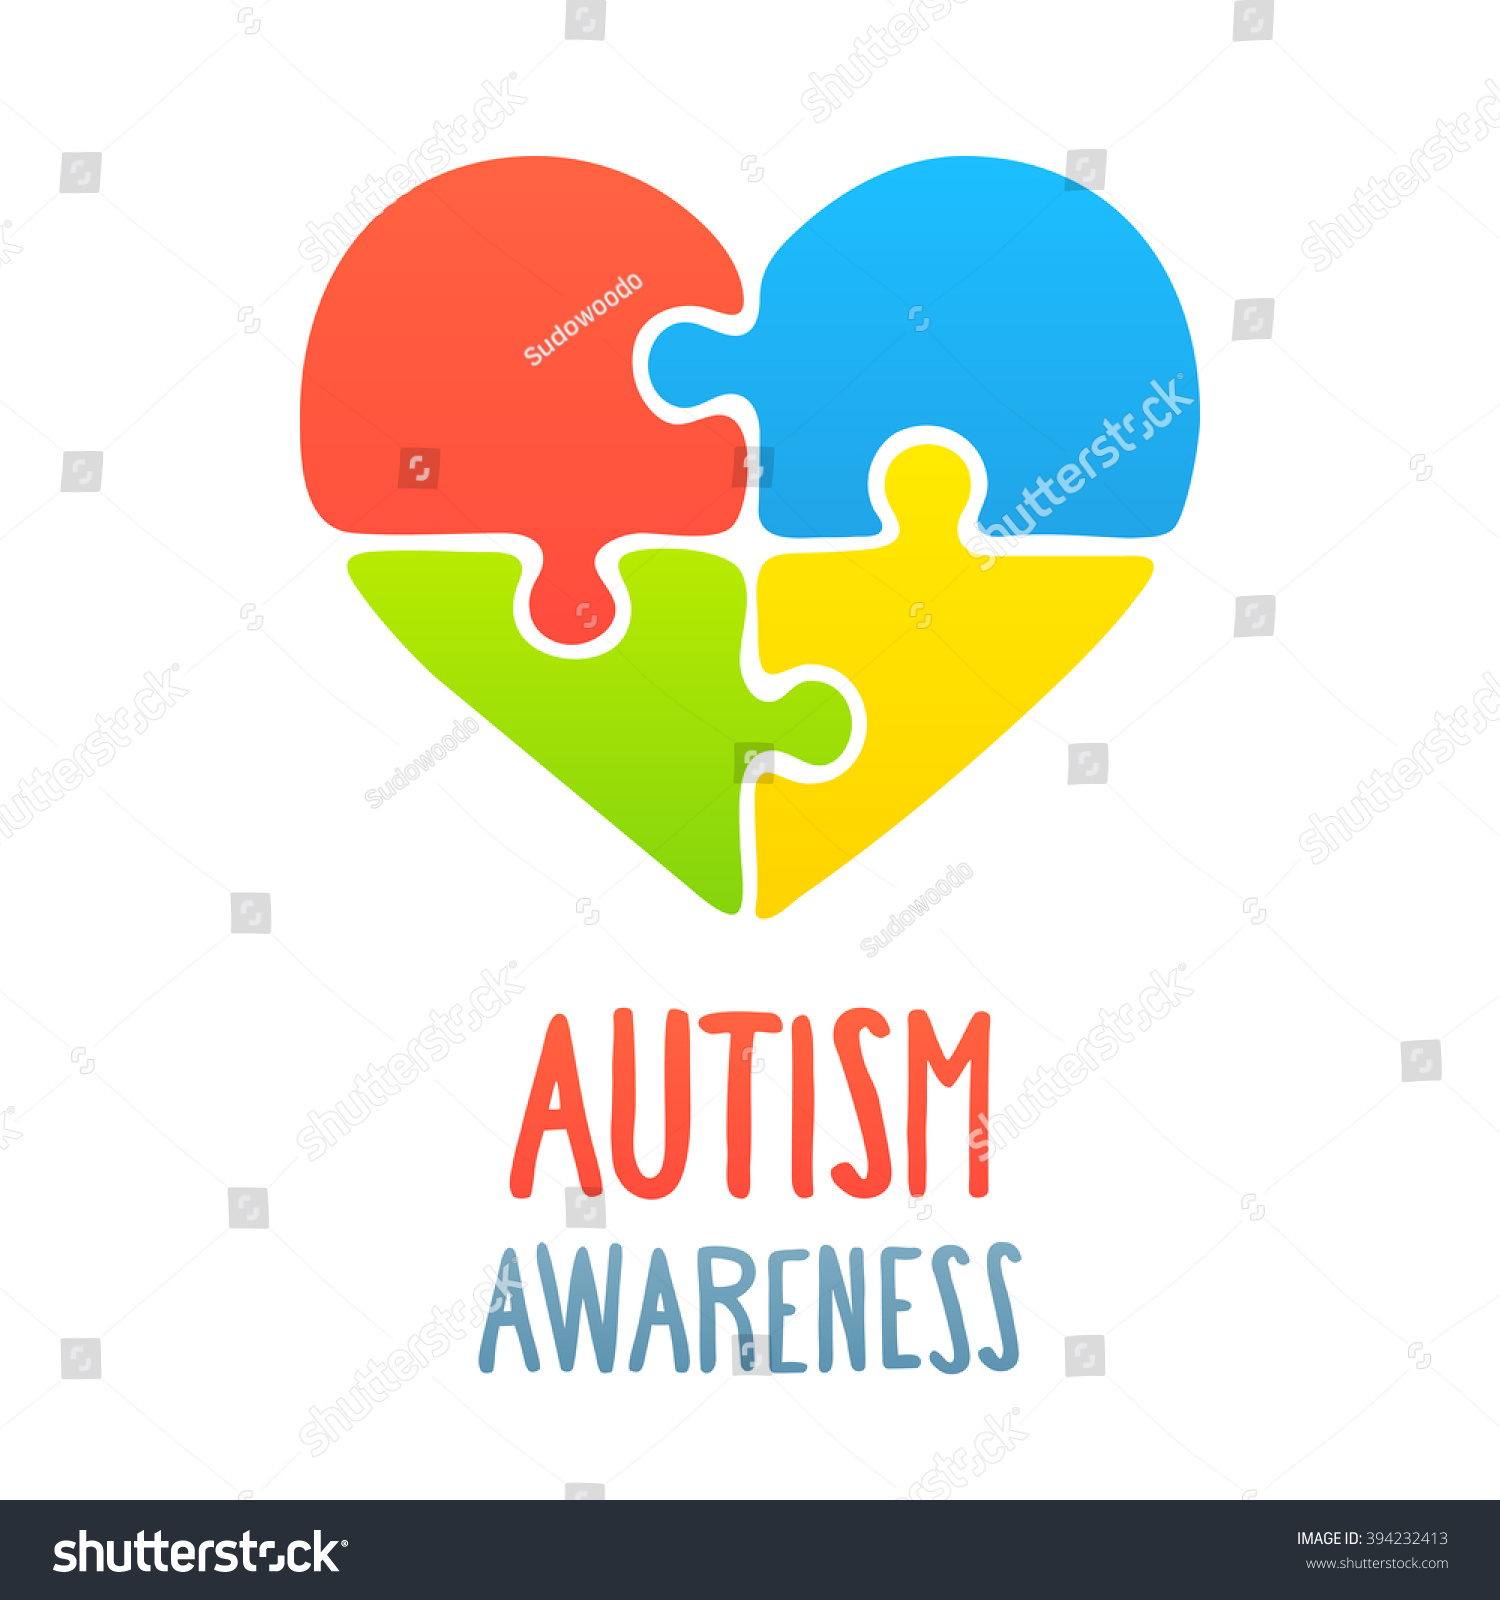 Autism Awareness Heart Jigsaw Puzzle Symbol Stock Vector Royalty